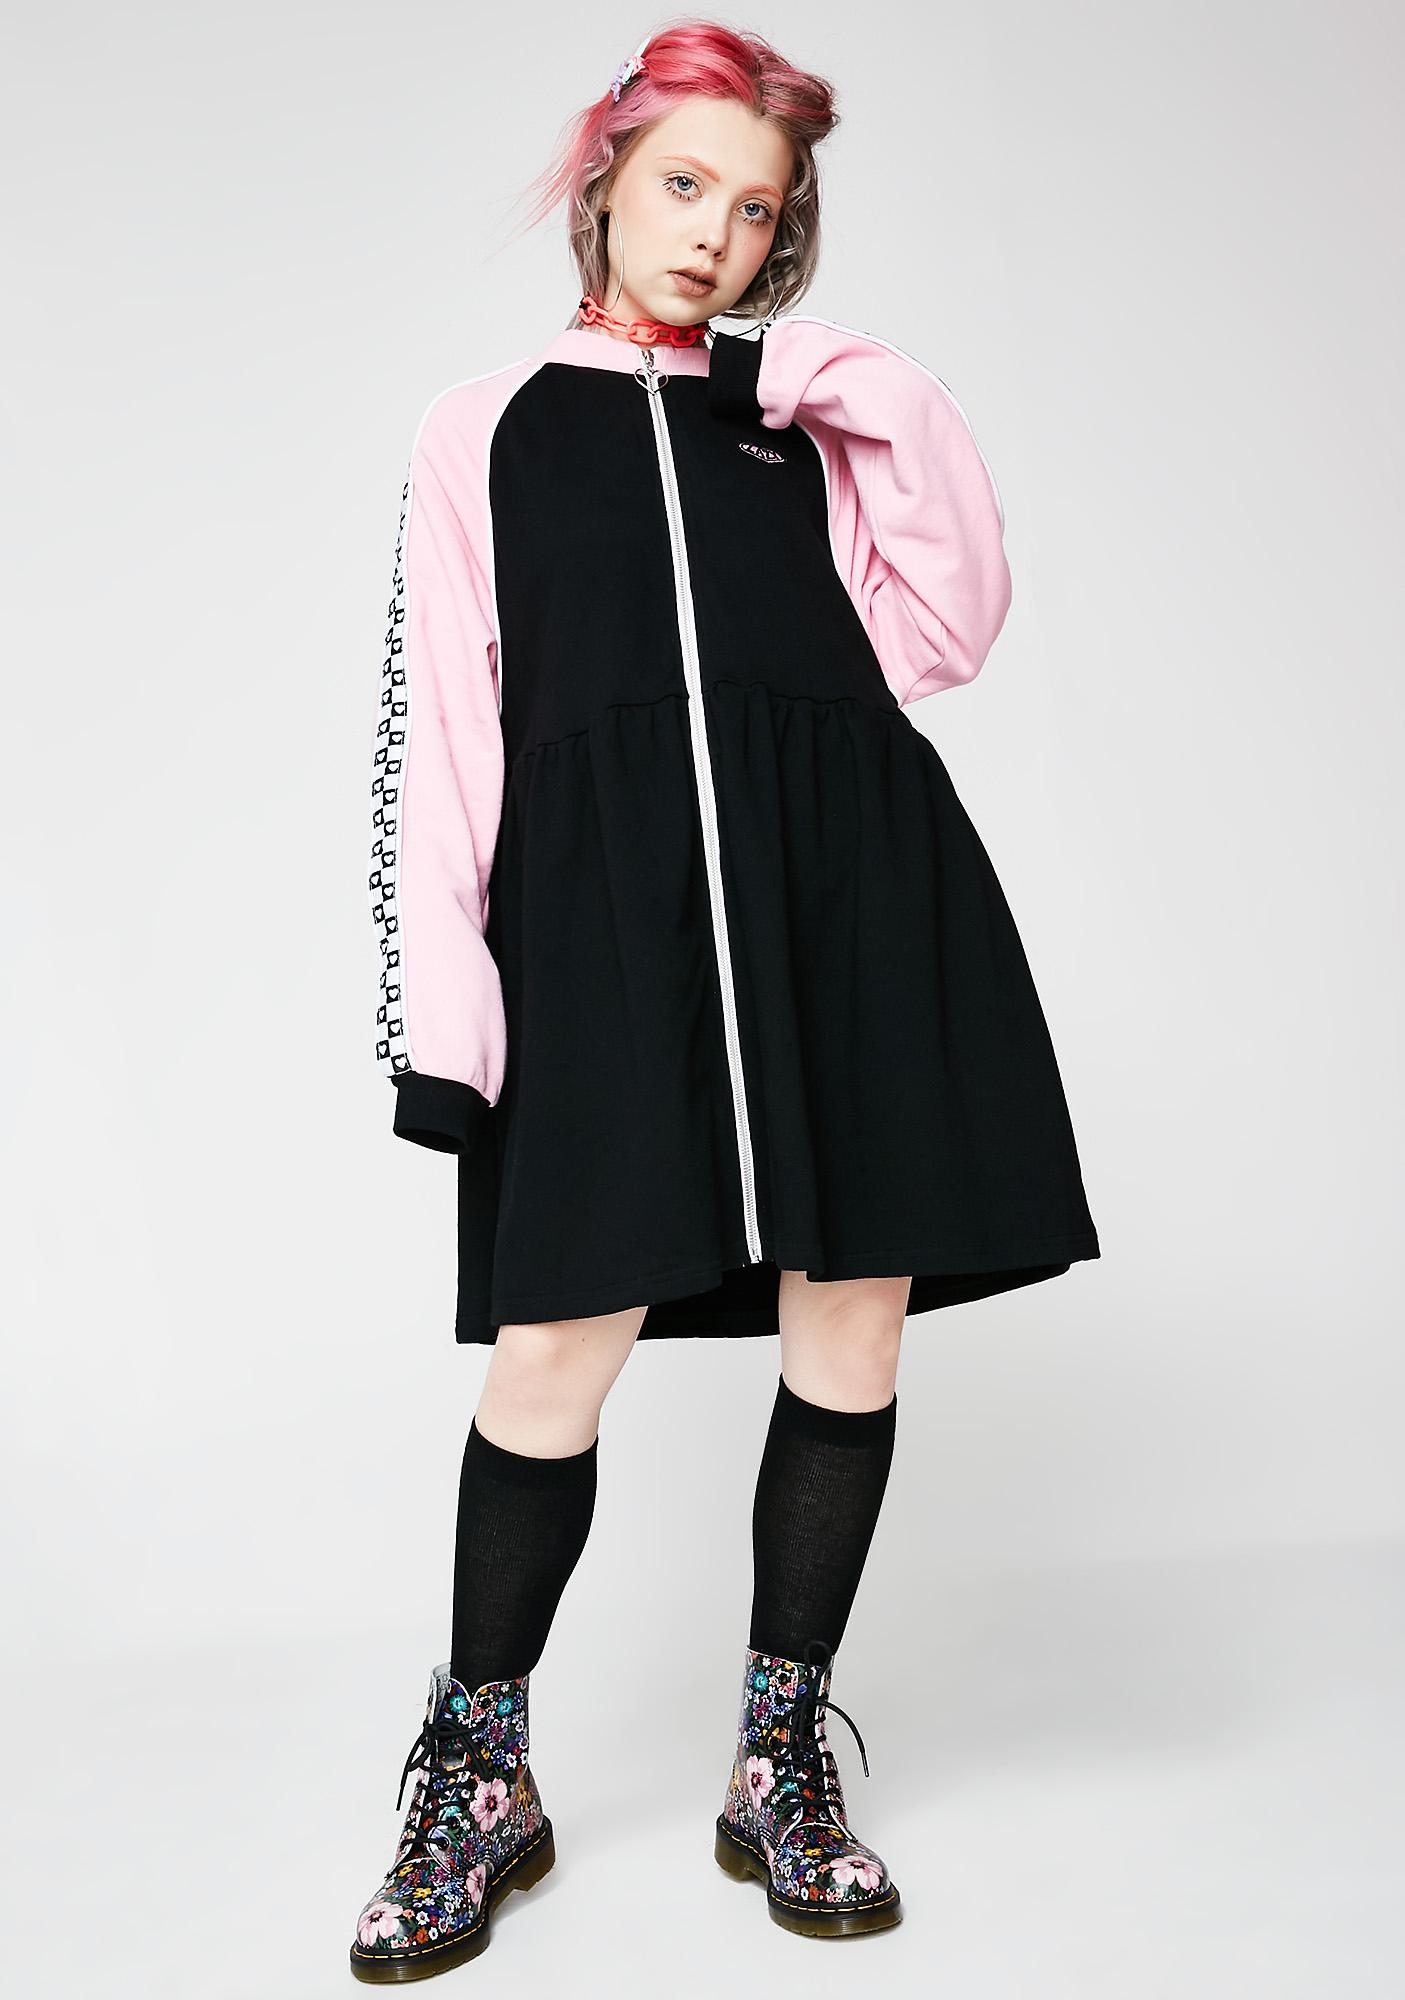 407fdcd64e5 ... Lazy Oaf Sports Club Zip Sweater Dress ...